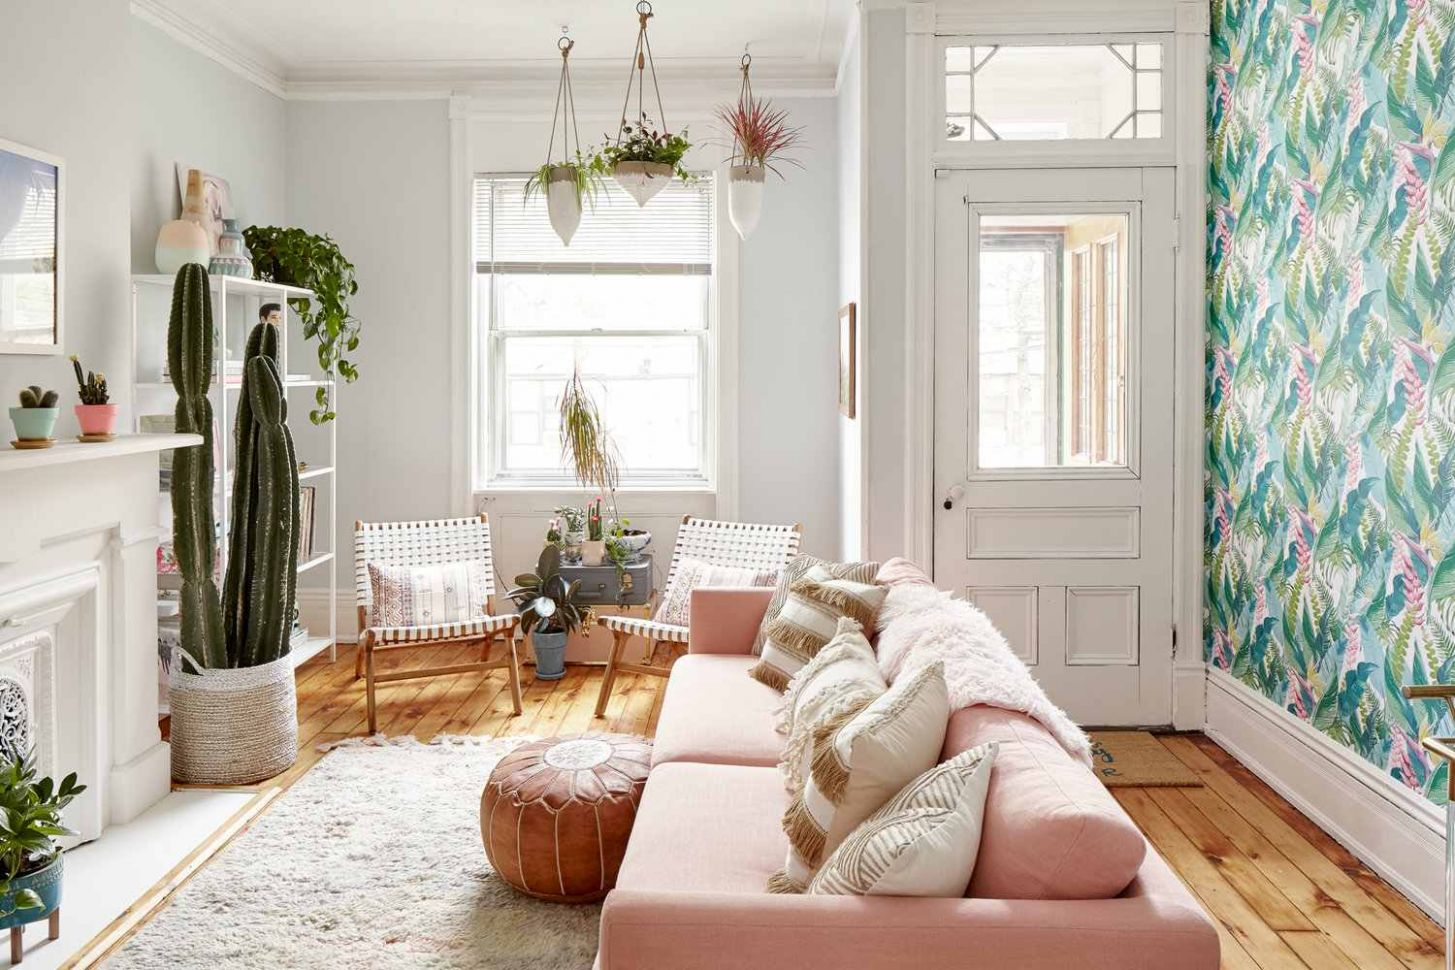 11 Simple Small Living Room Ideas Brimming With Style - 15 x 18 living room ideas